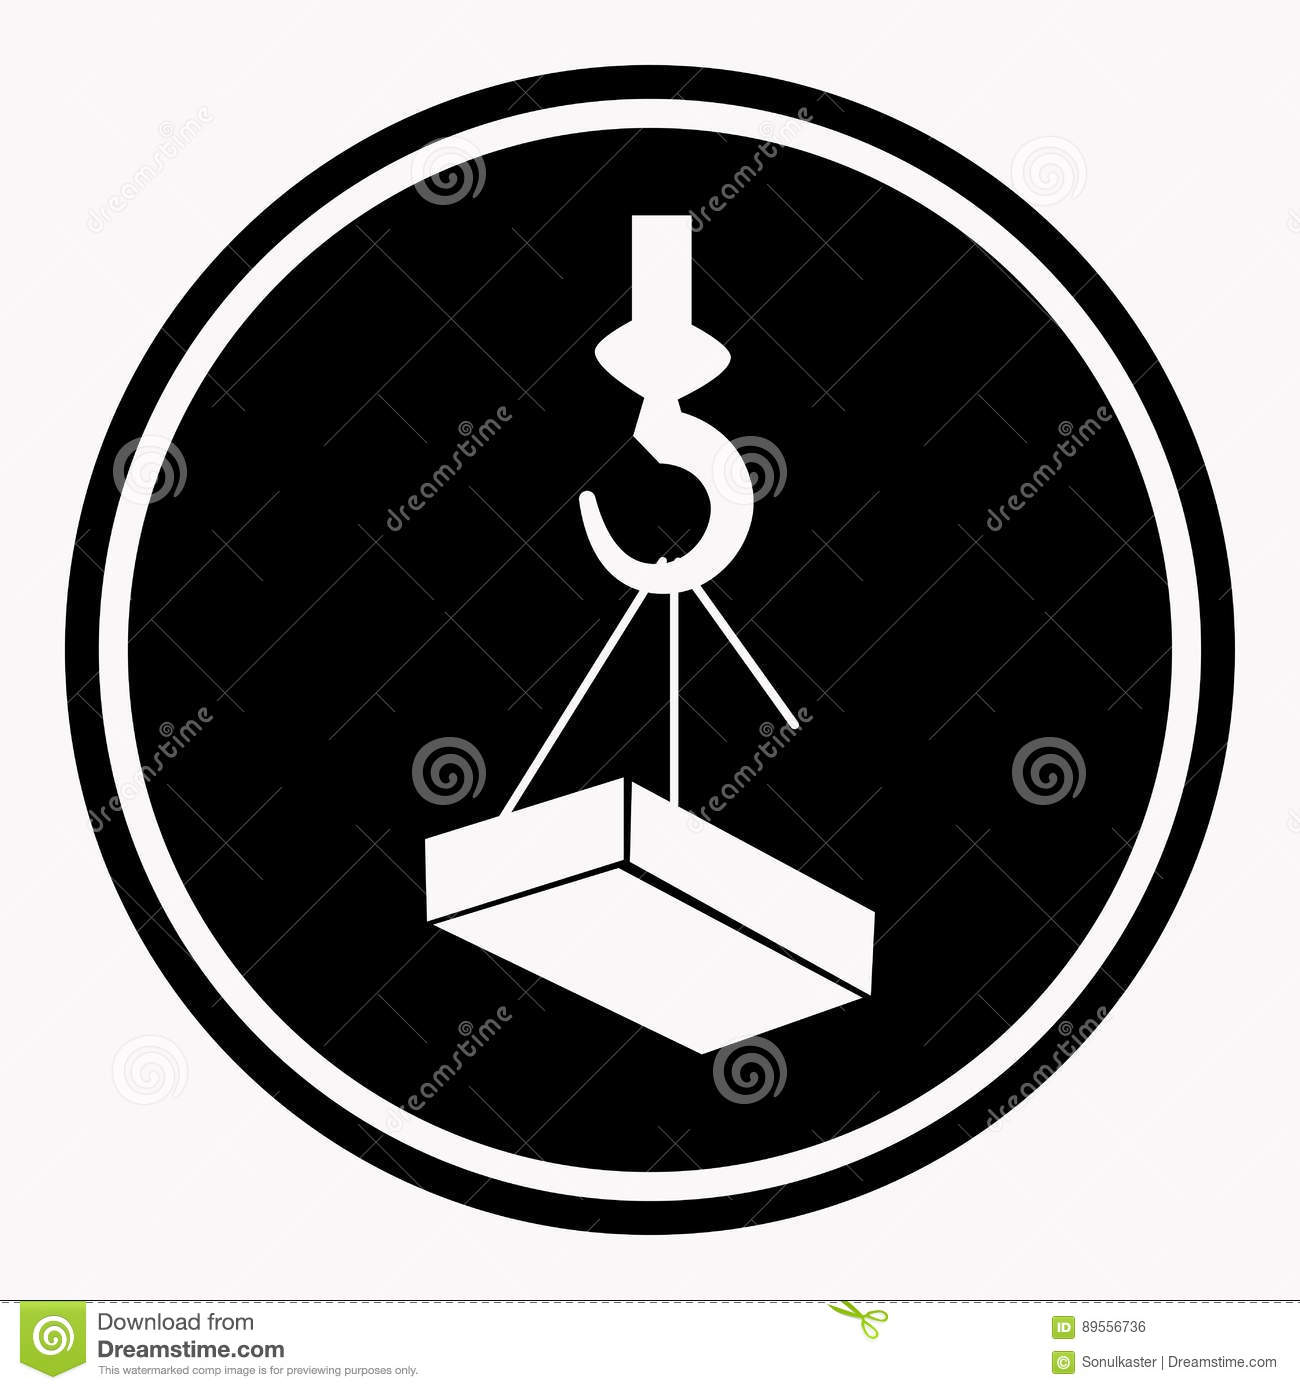 attention construction caution sign with heavy block on crane hook symbol   warning or danger precaution vector isolated icon or label